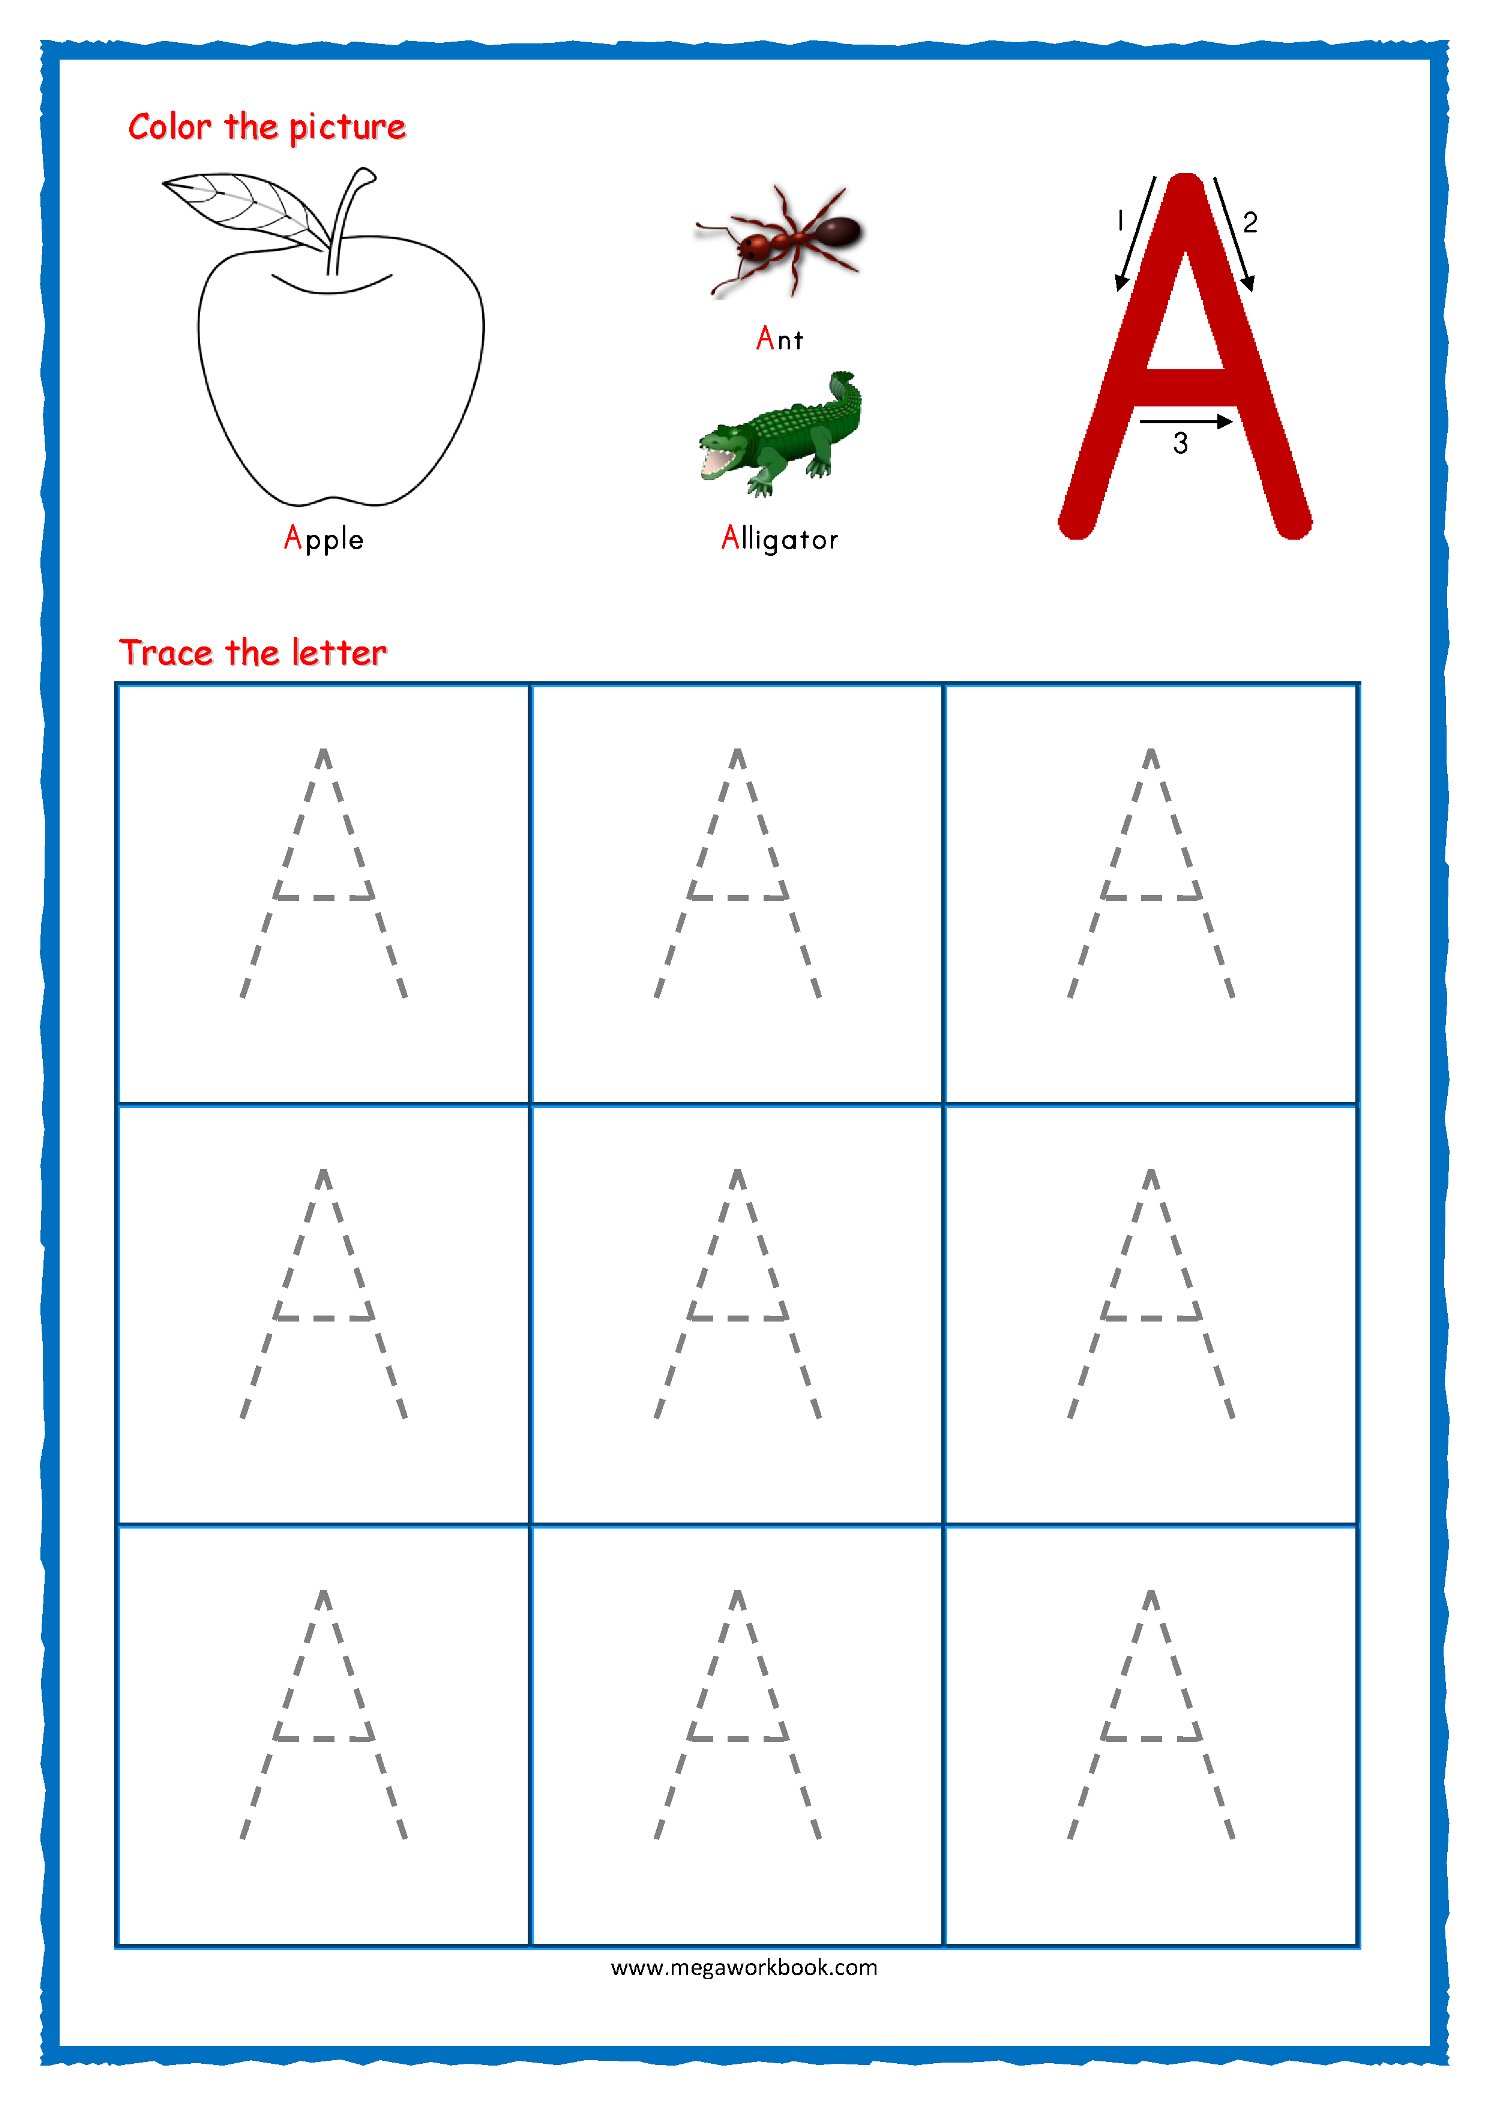 Tracing Letters - Alphabet Tracing - Capital Letters pertaining to Alphabet Tracing For Toddlers